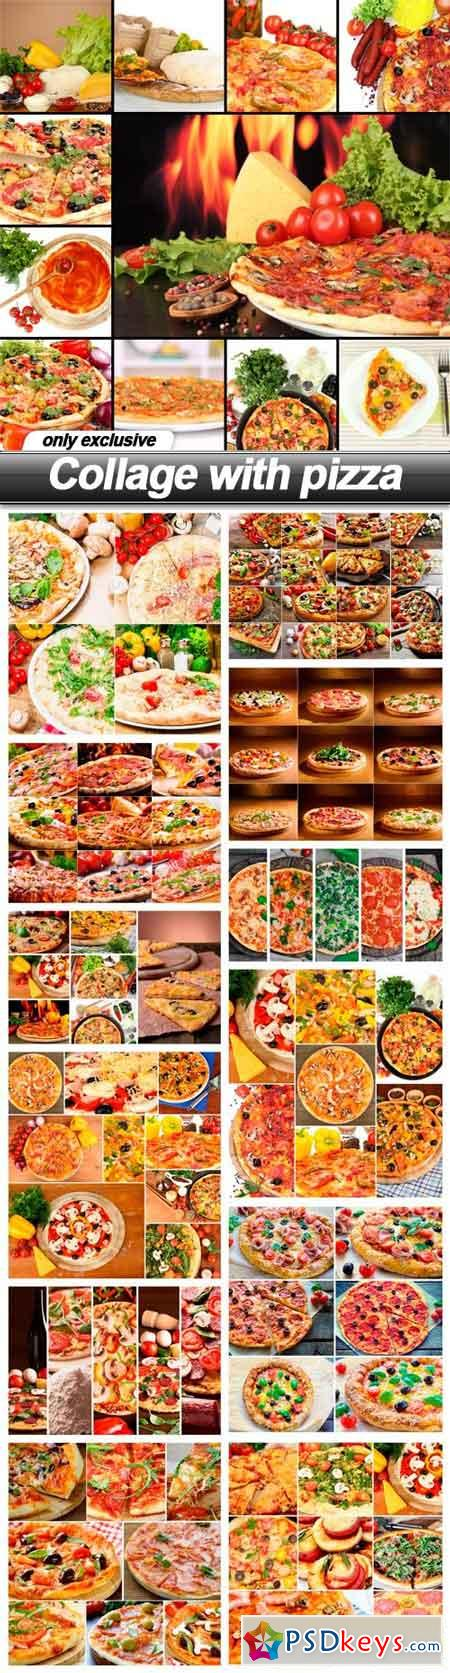 Collage with pizza - 13 UHQ JPEG